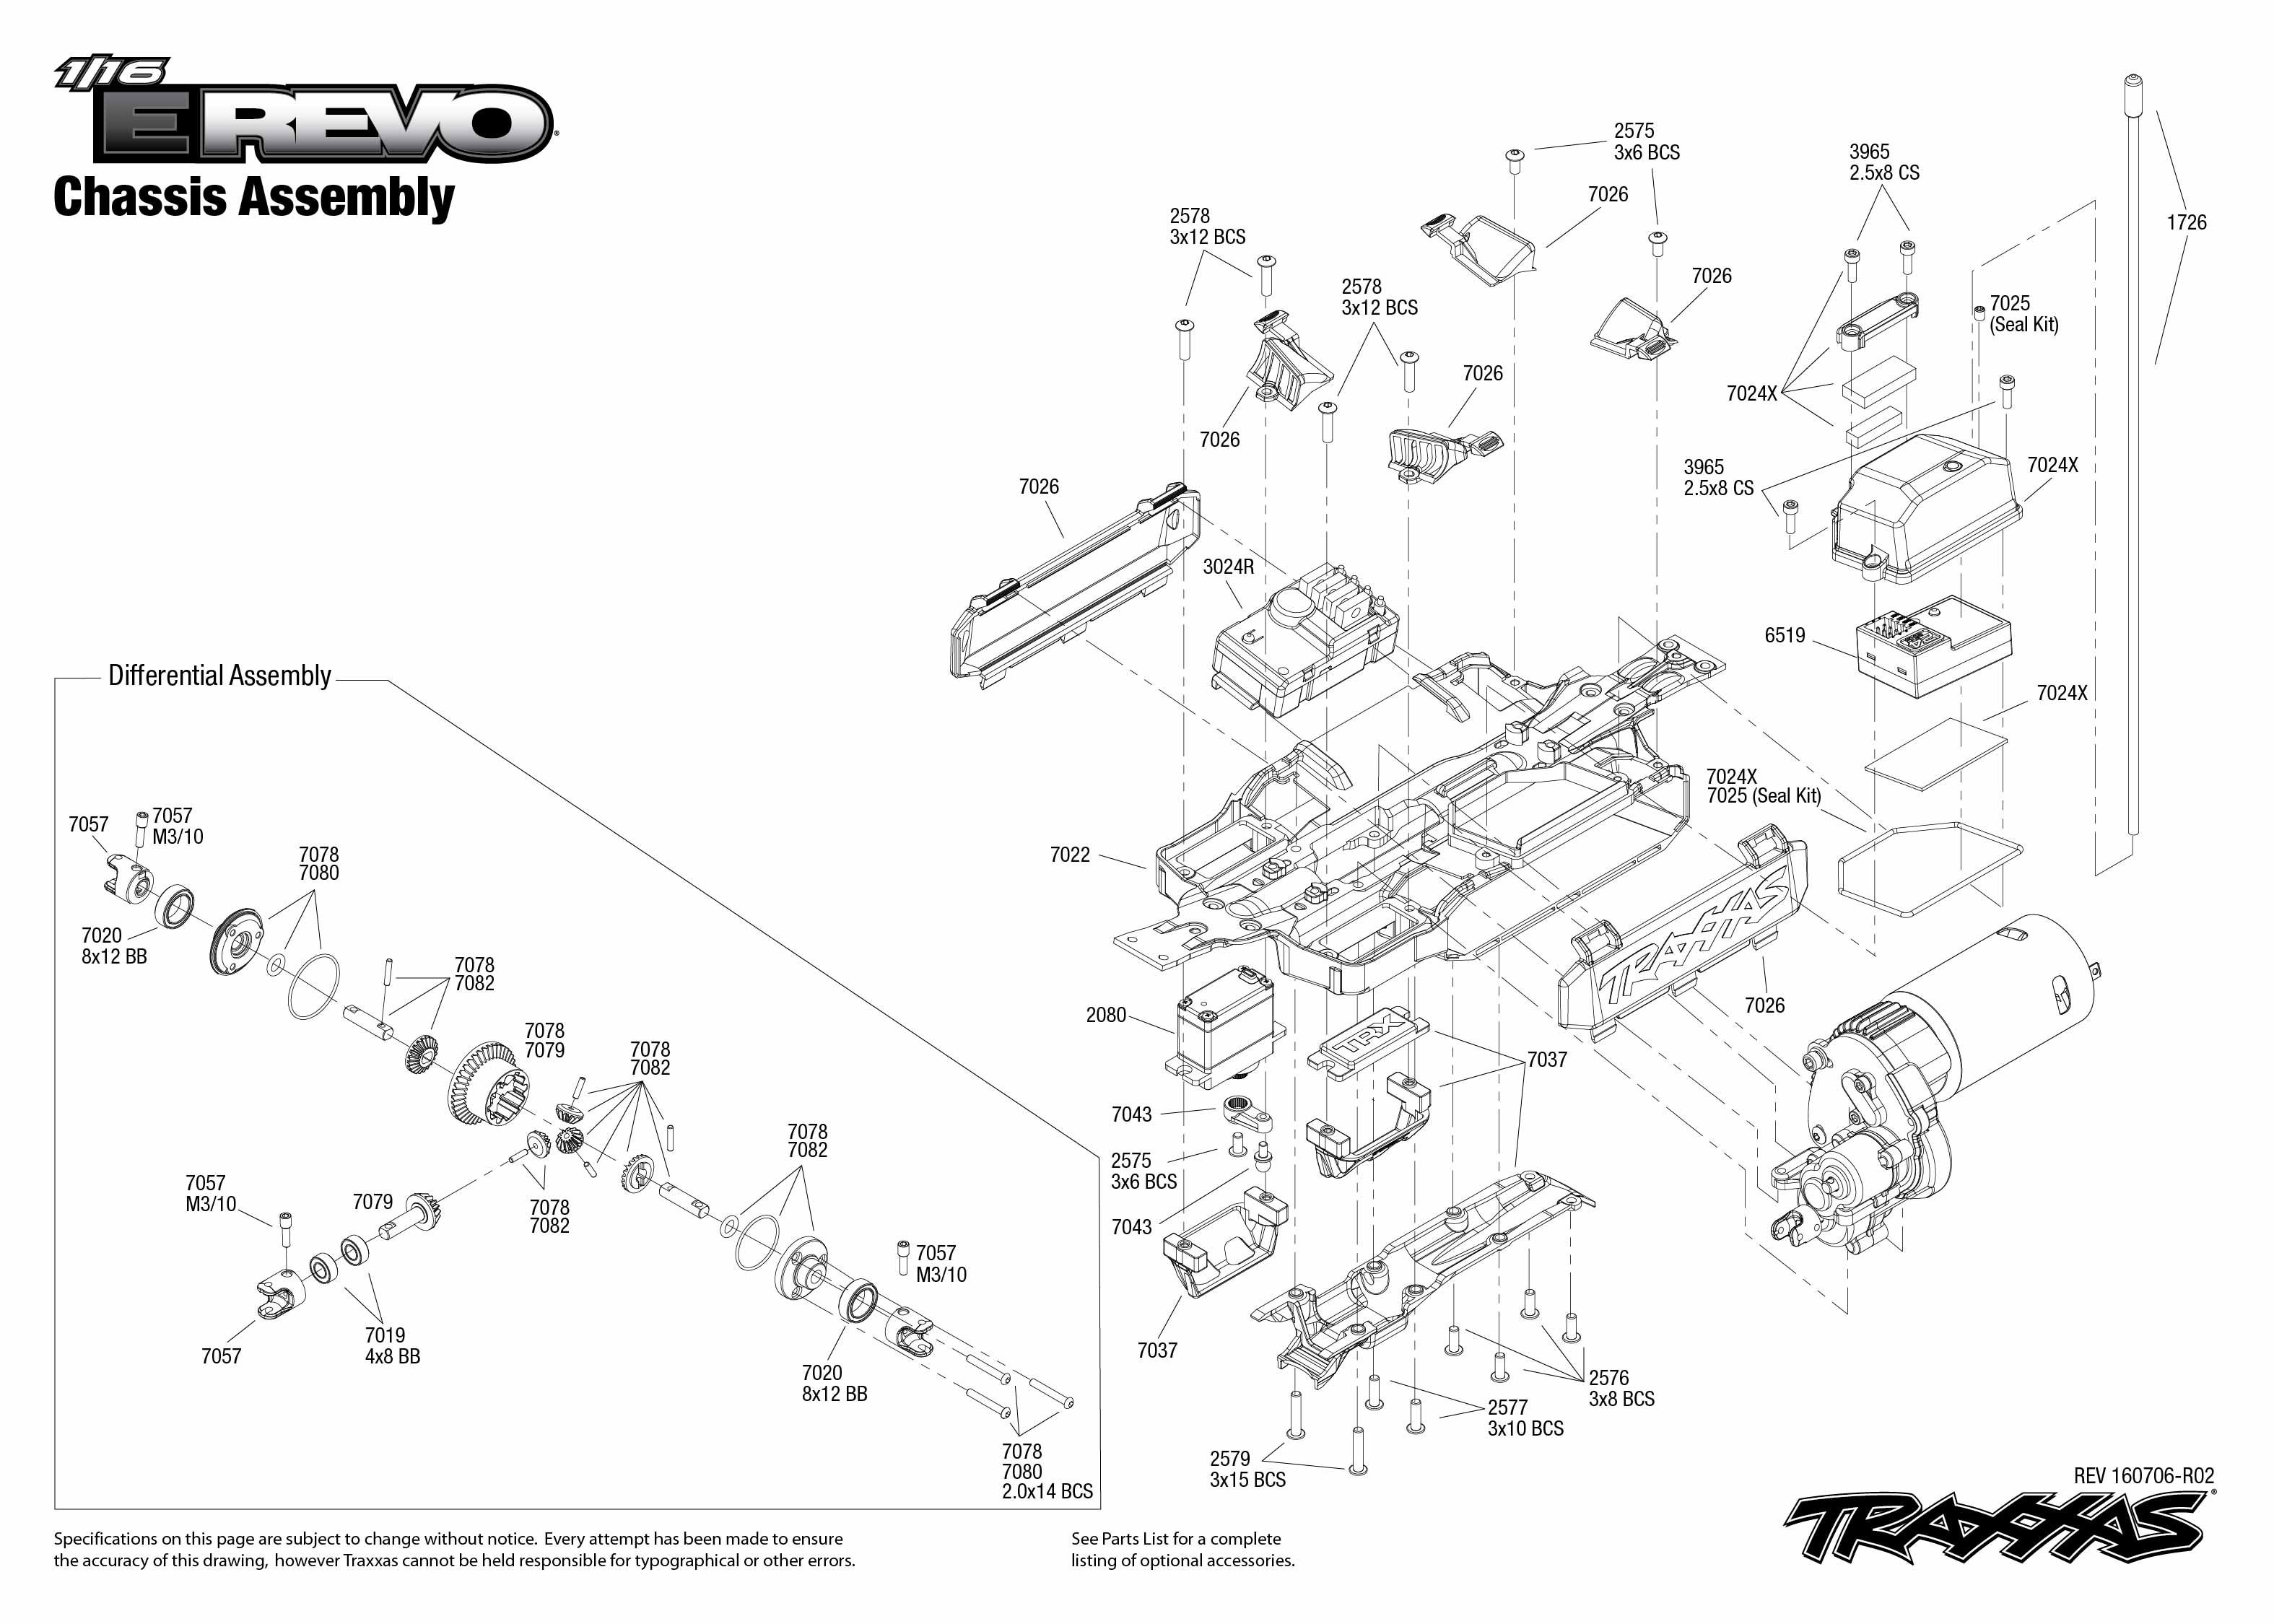 1/16 E-Revo (71054-1) Chassis Assembly Exploded View